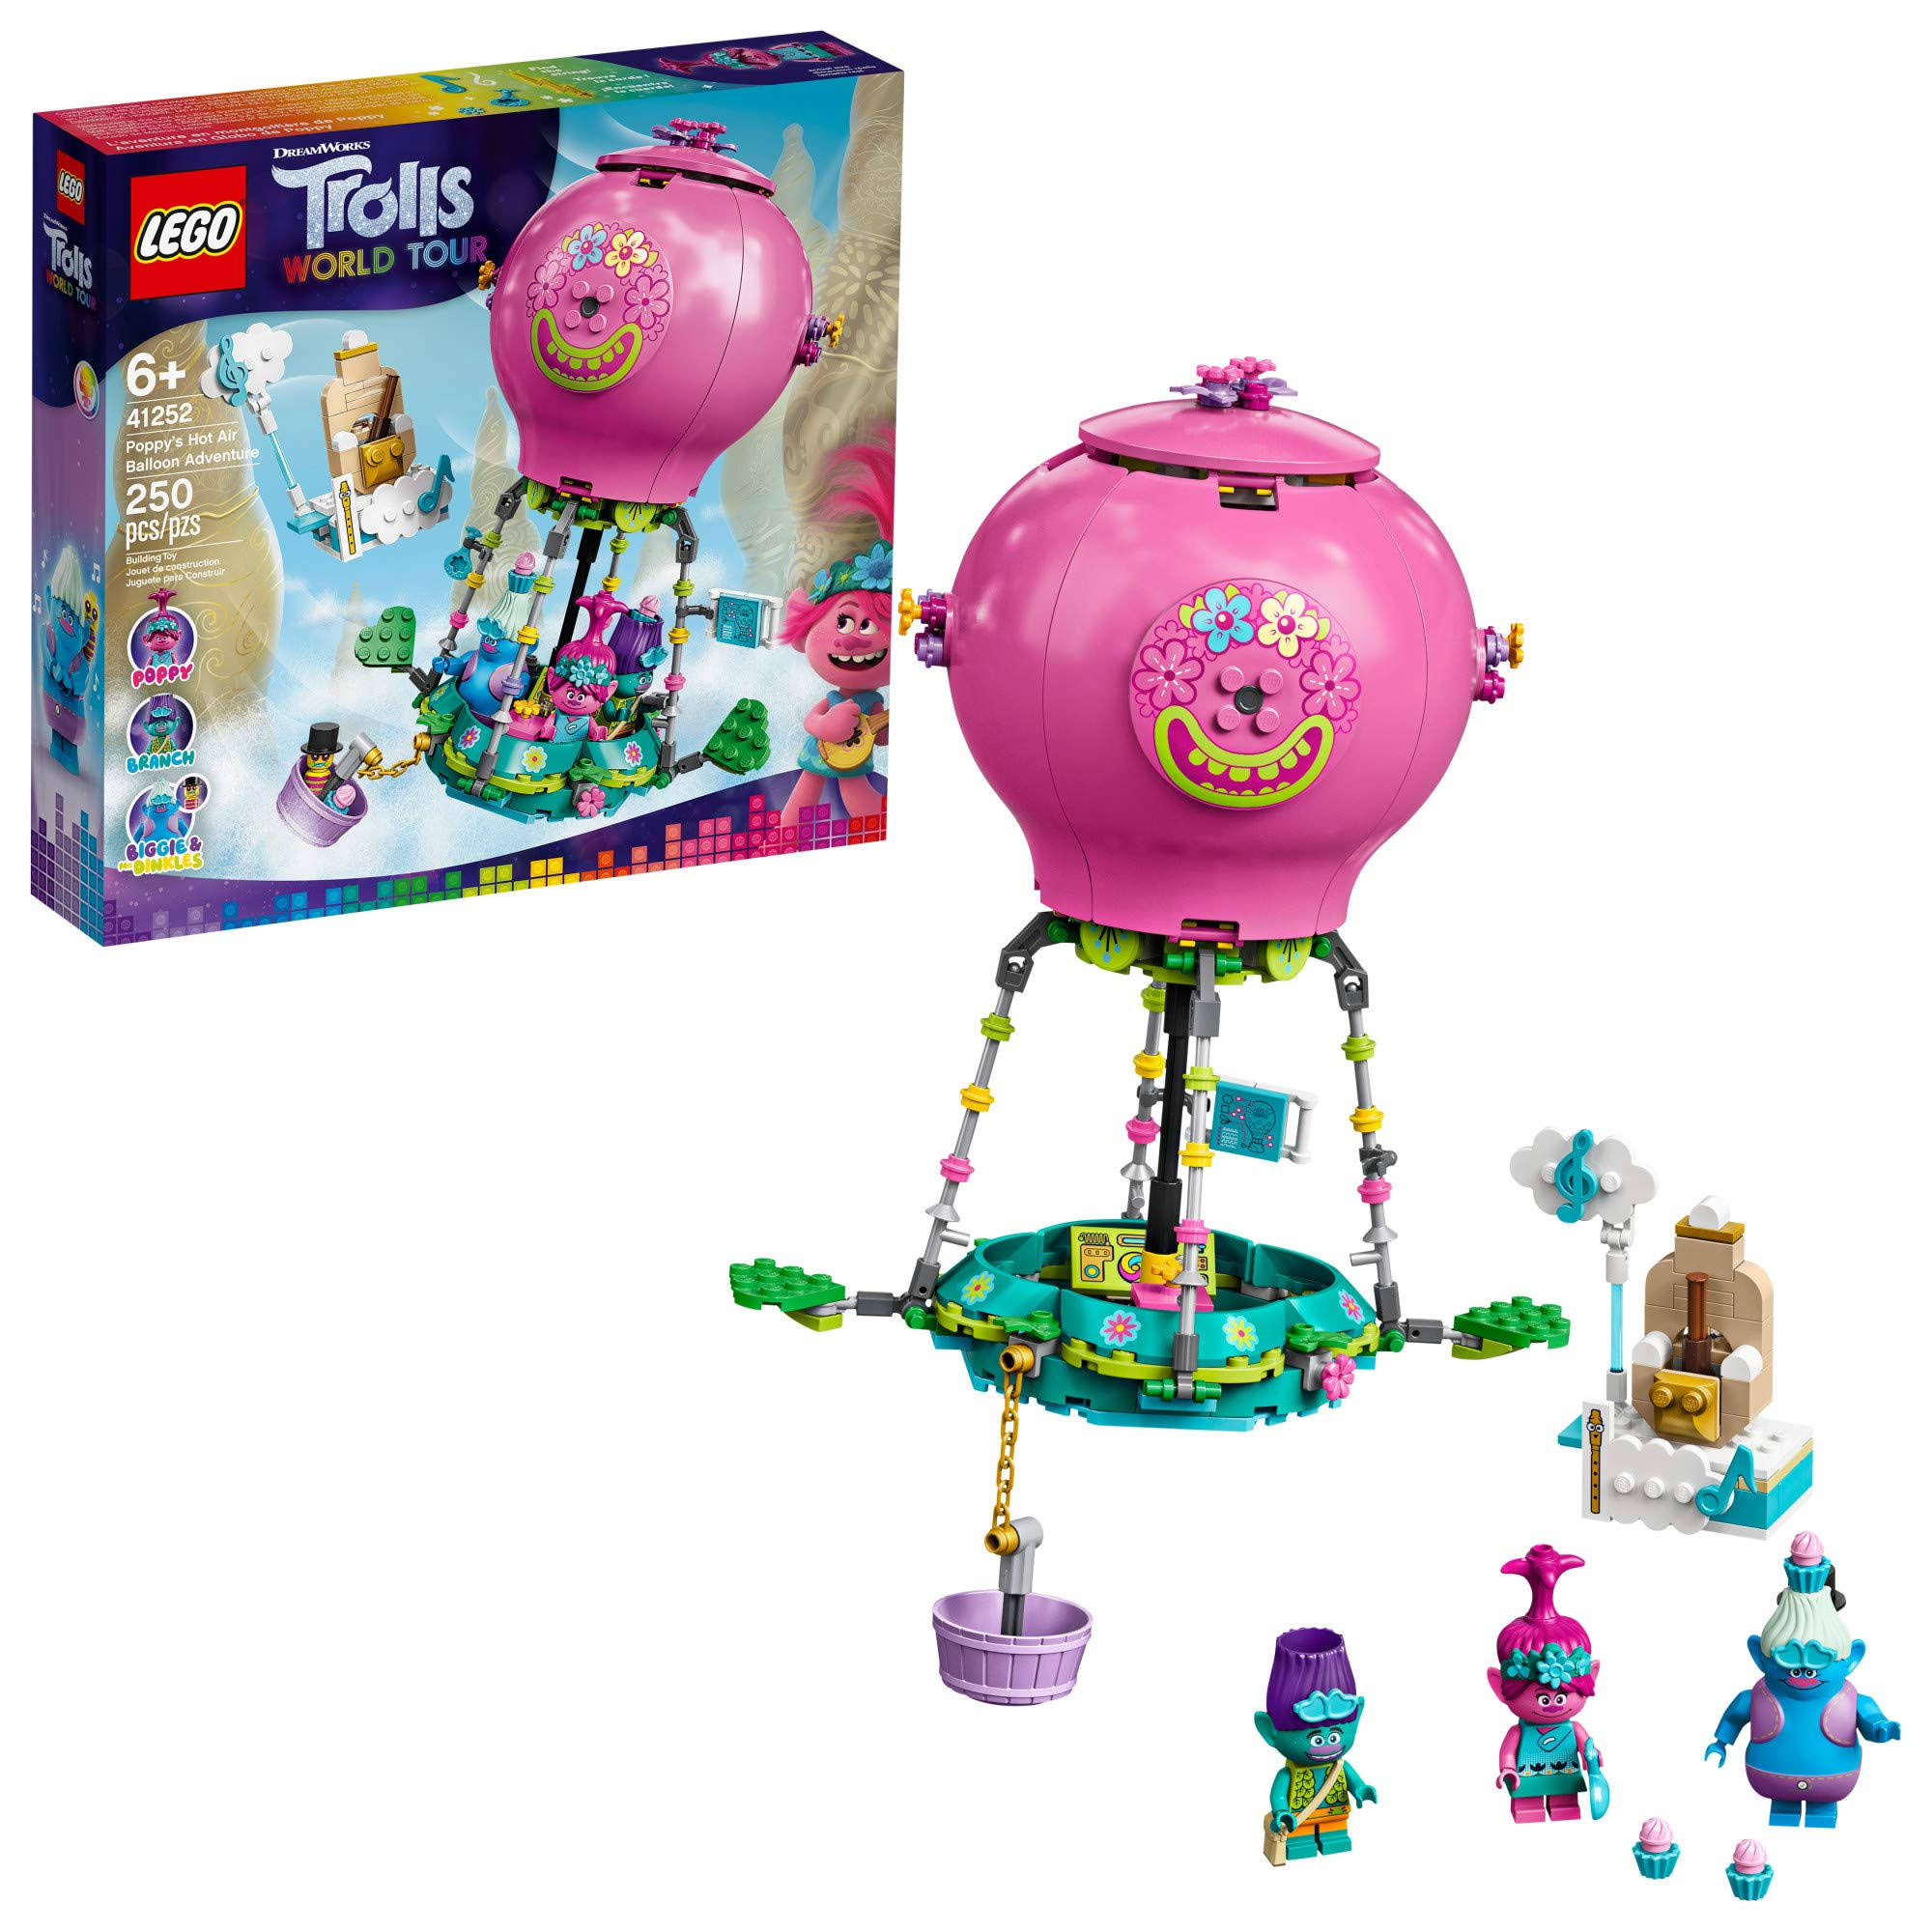 Lego Trolls World Tour Poppy's Hot Air Balloon Adventure 41252